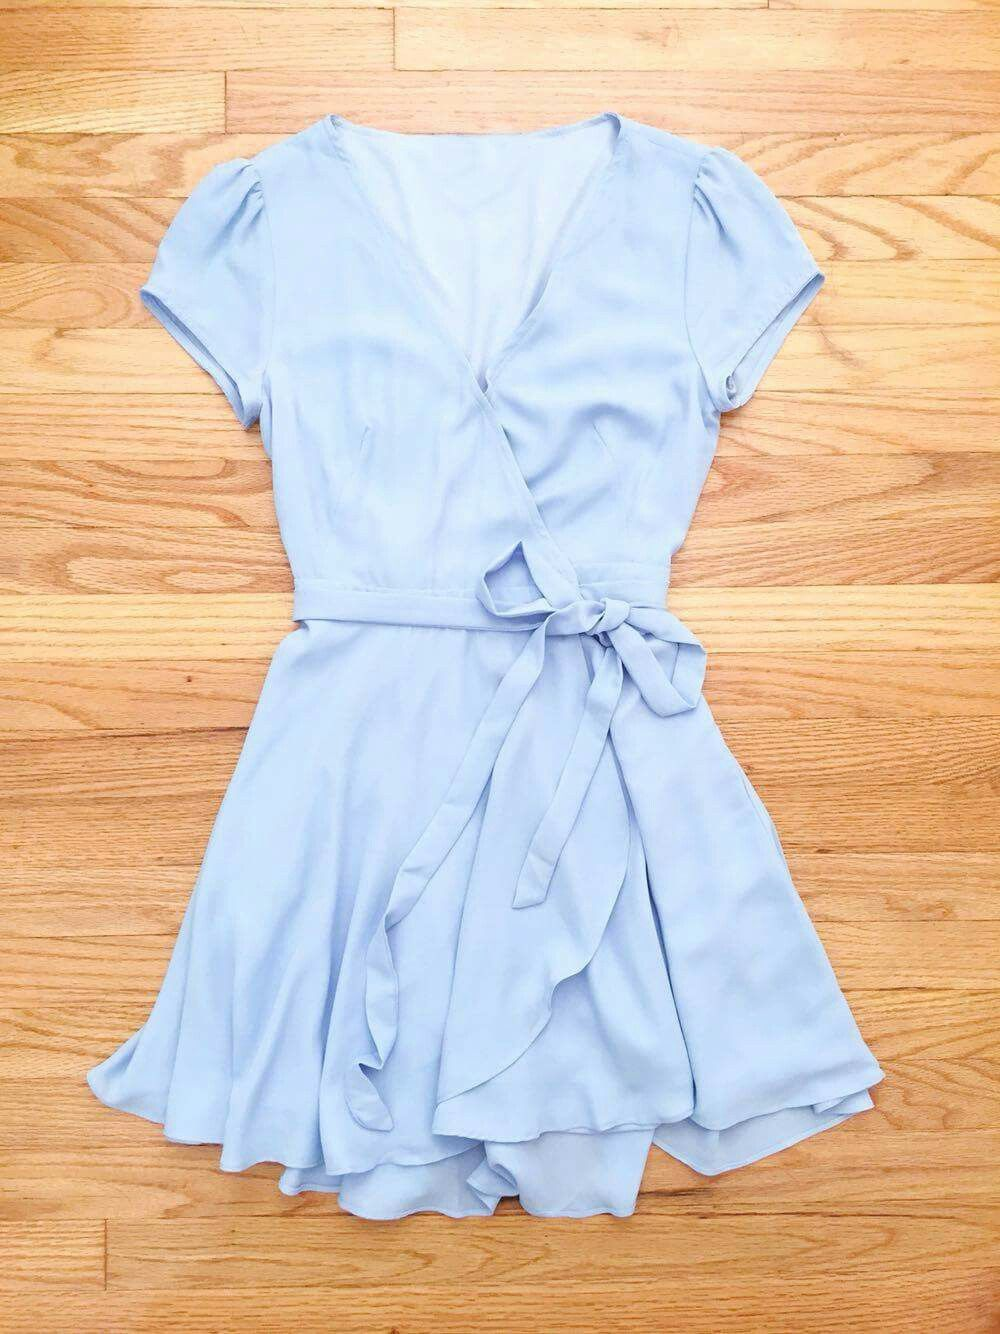 Best 25+ Light blue casual dress ideas on Pinterest ...